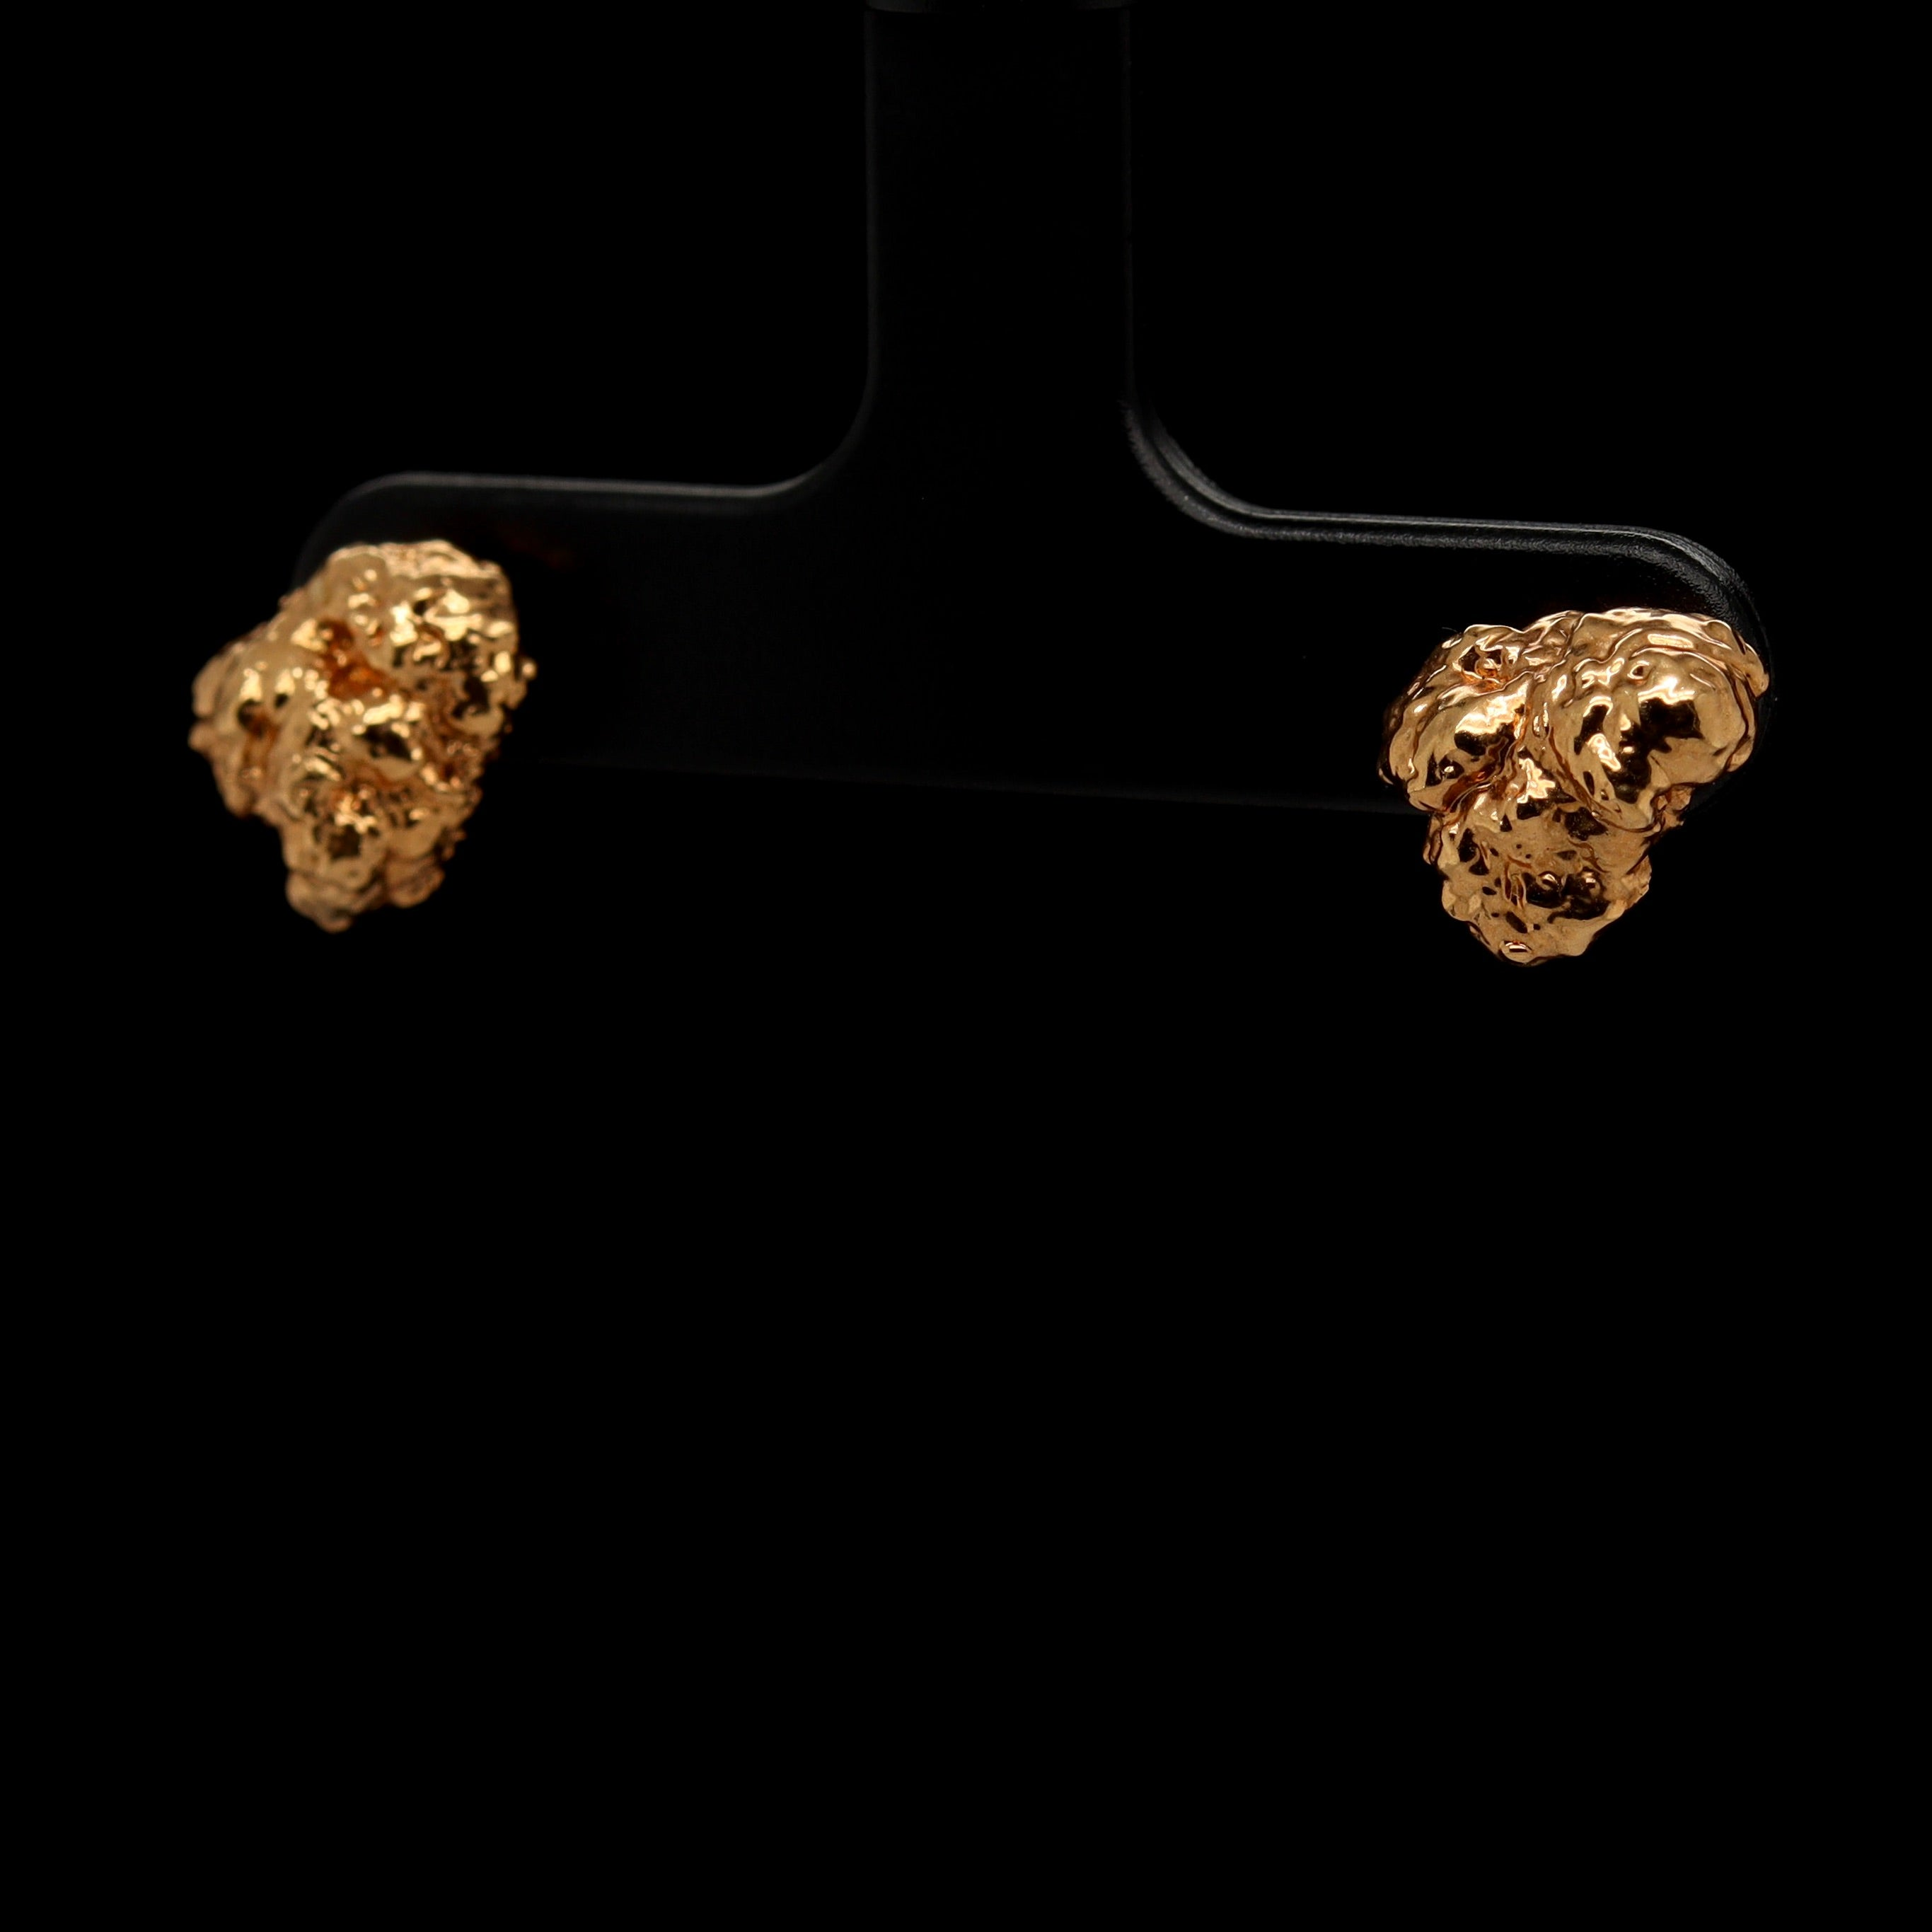 24k OG Kush Bud Stud Earrings